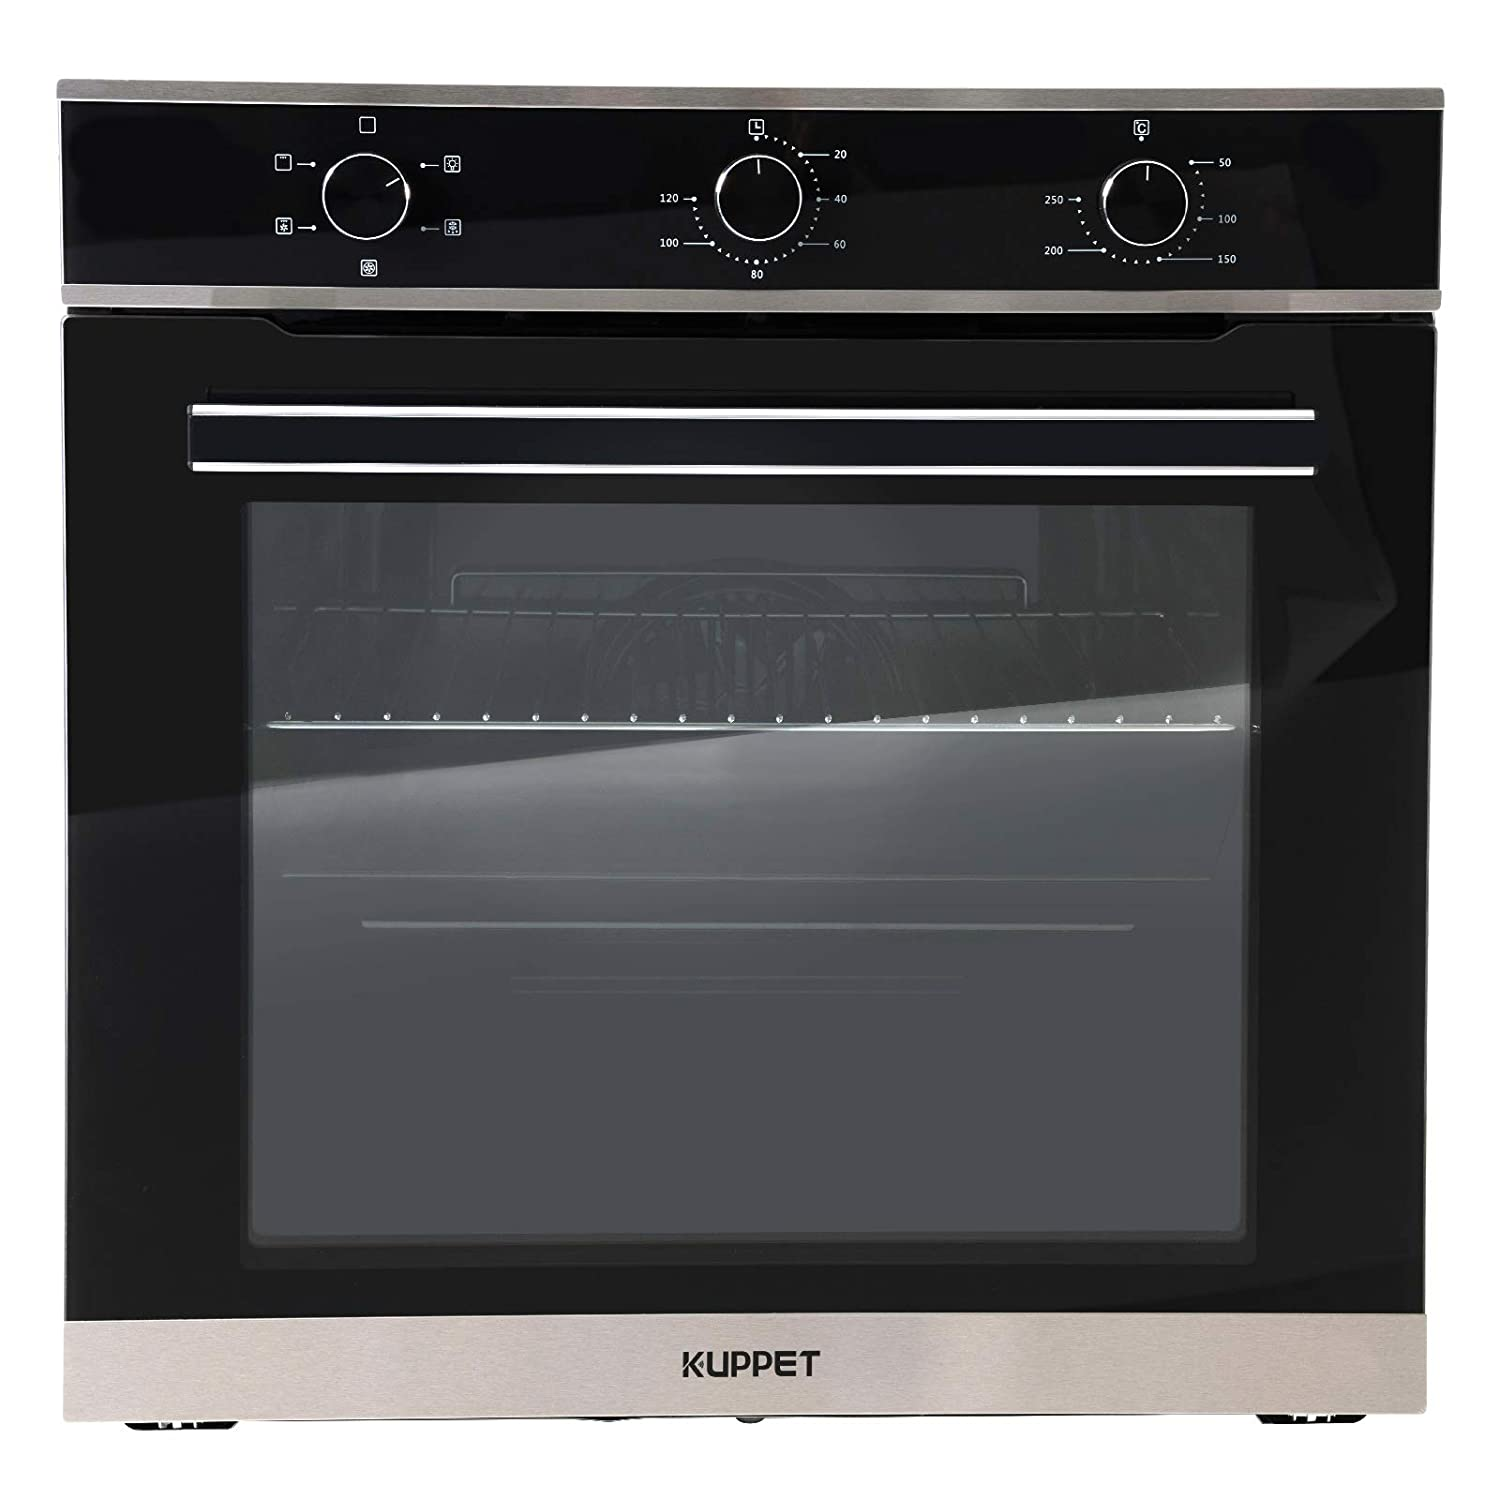 "KUPPET 24"" Electric Single Wall Oven with 5 Functions, Tempered Glass, Push Button Controls, Built-In or Under-Couter, Faster Cooking Convection E750200-H1 …"